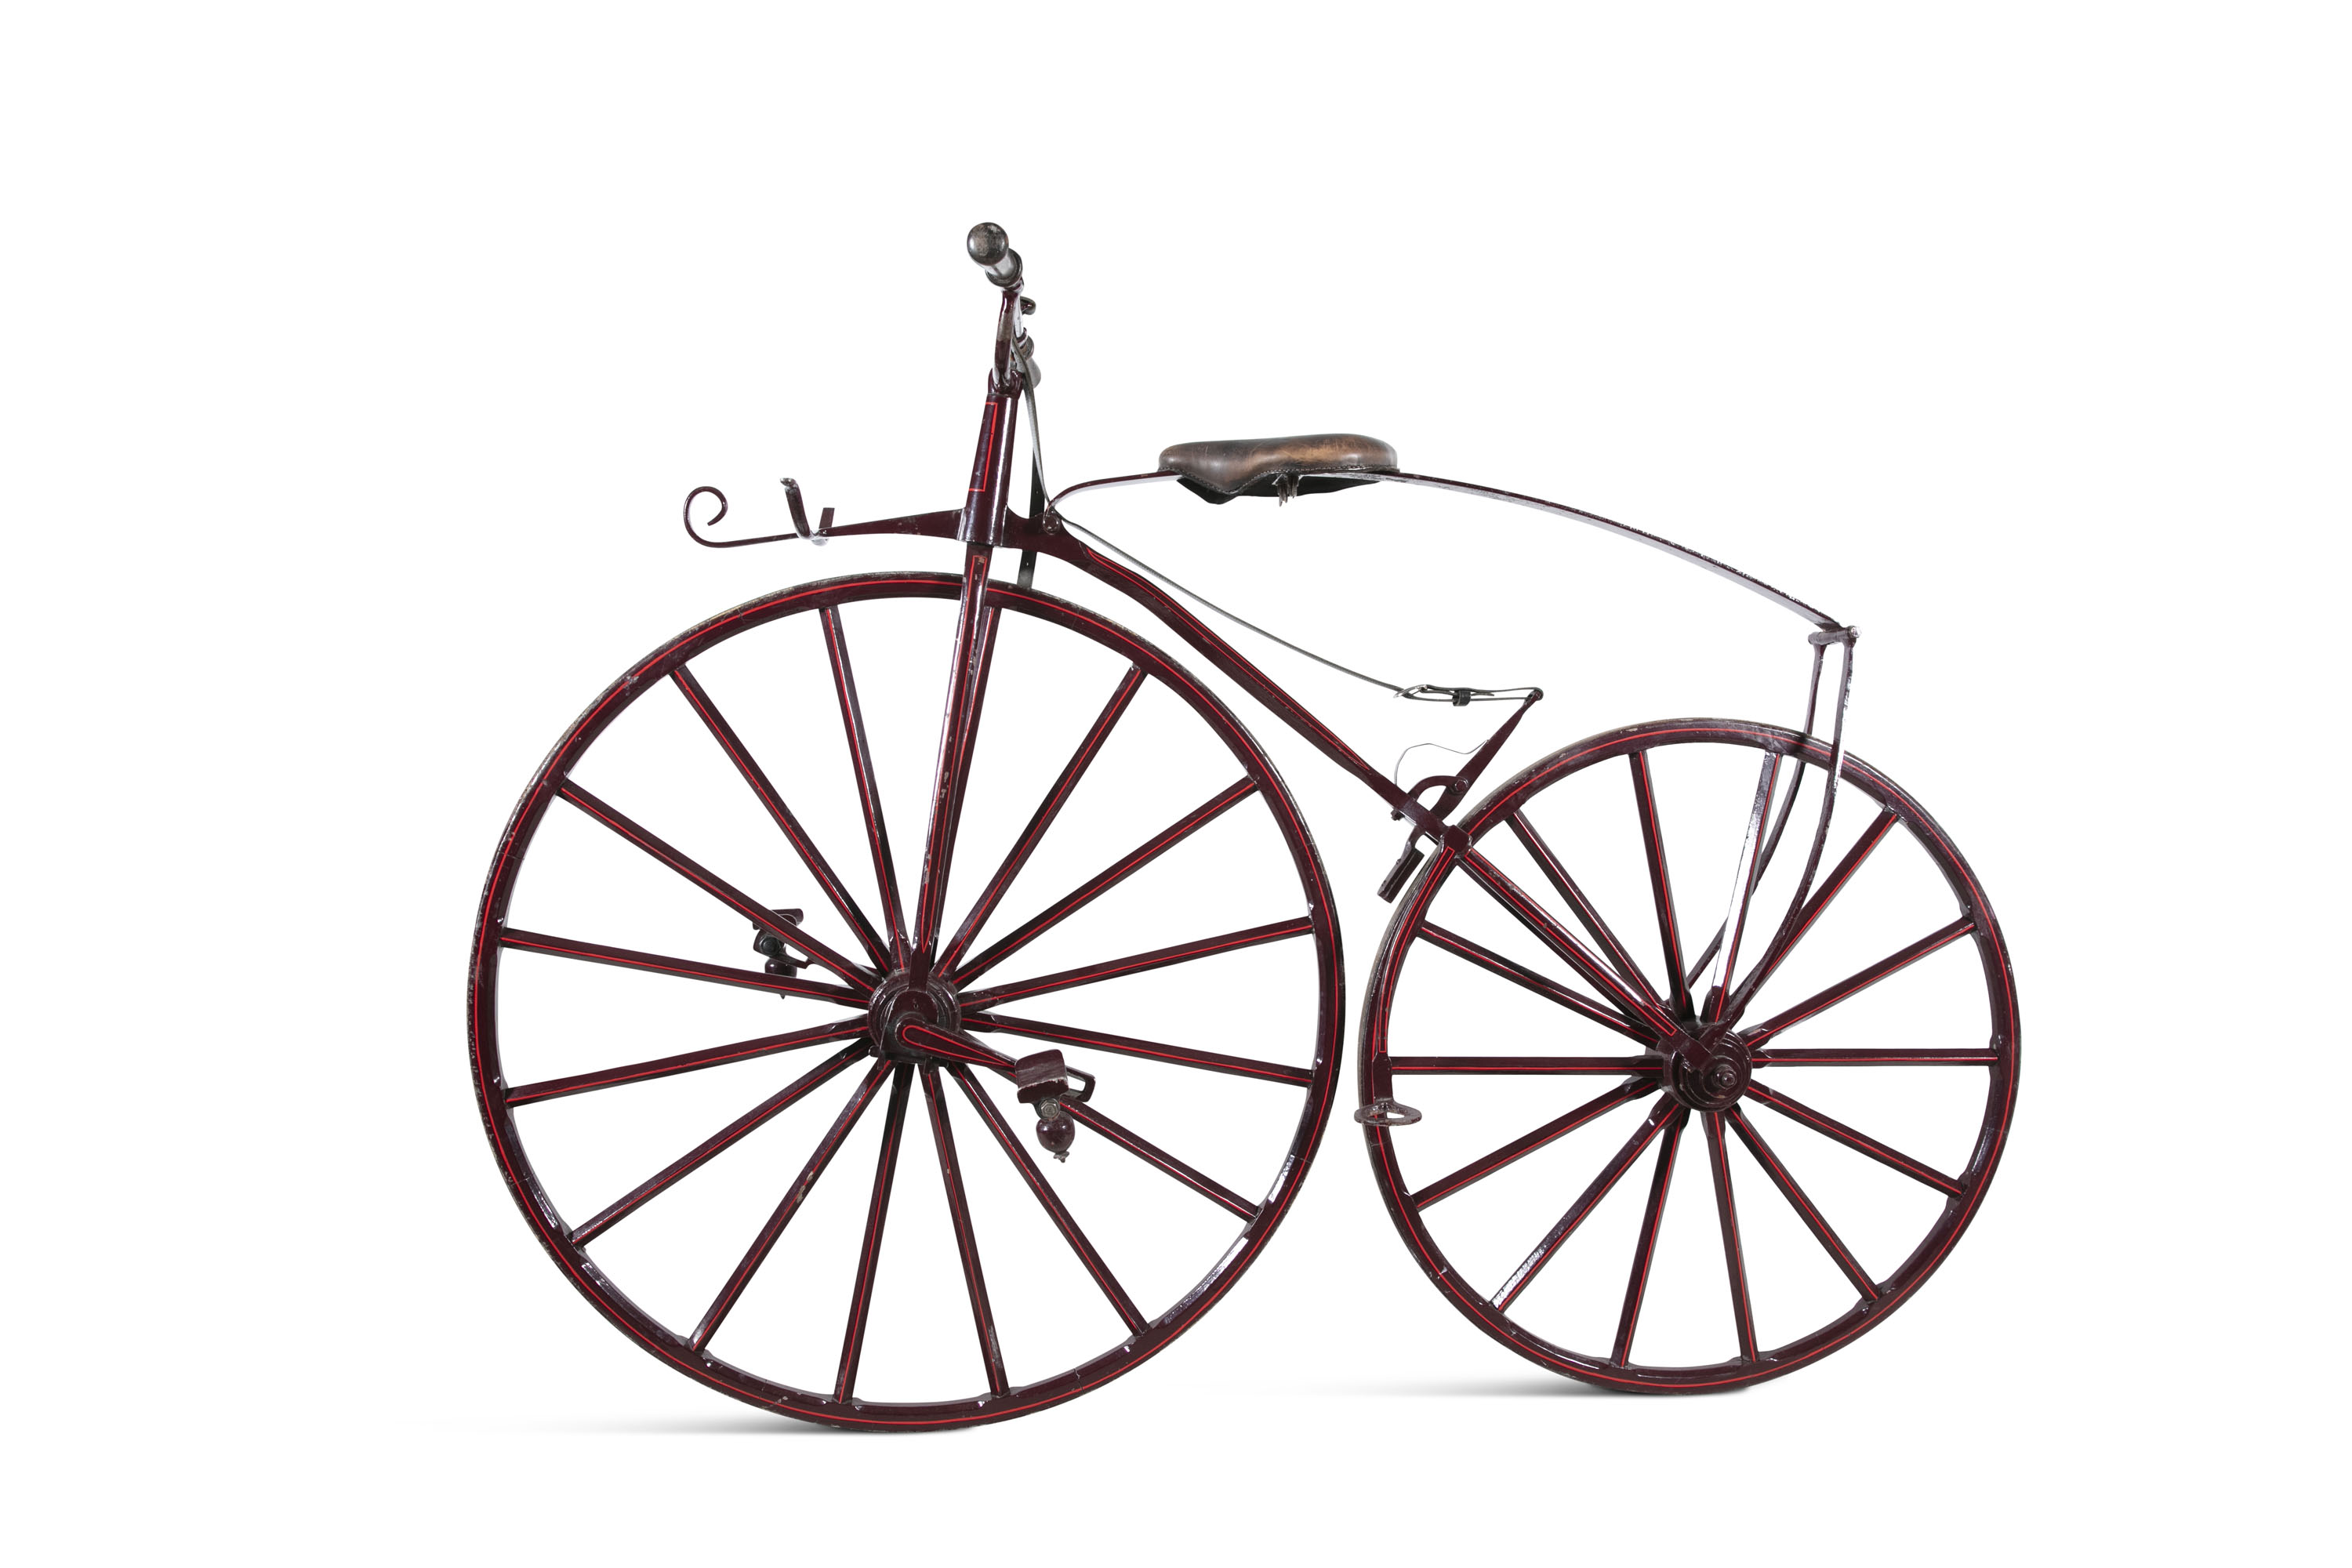 Lot 227 - ***PLEASE NOTE THE BICYCLE TYRES ARE WOOD AND METAL***A 19TH CENTURY 'BONE SHAKER' BICYCLE, of metal